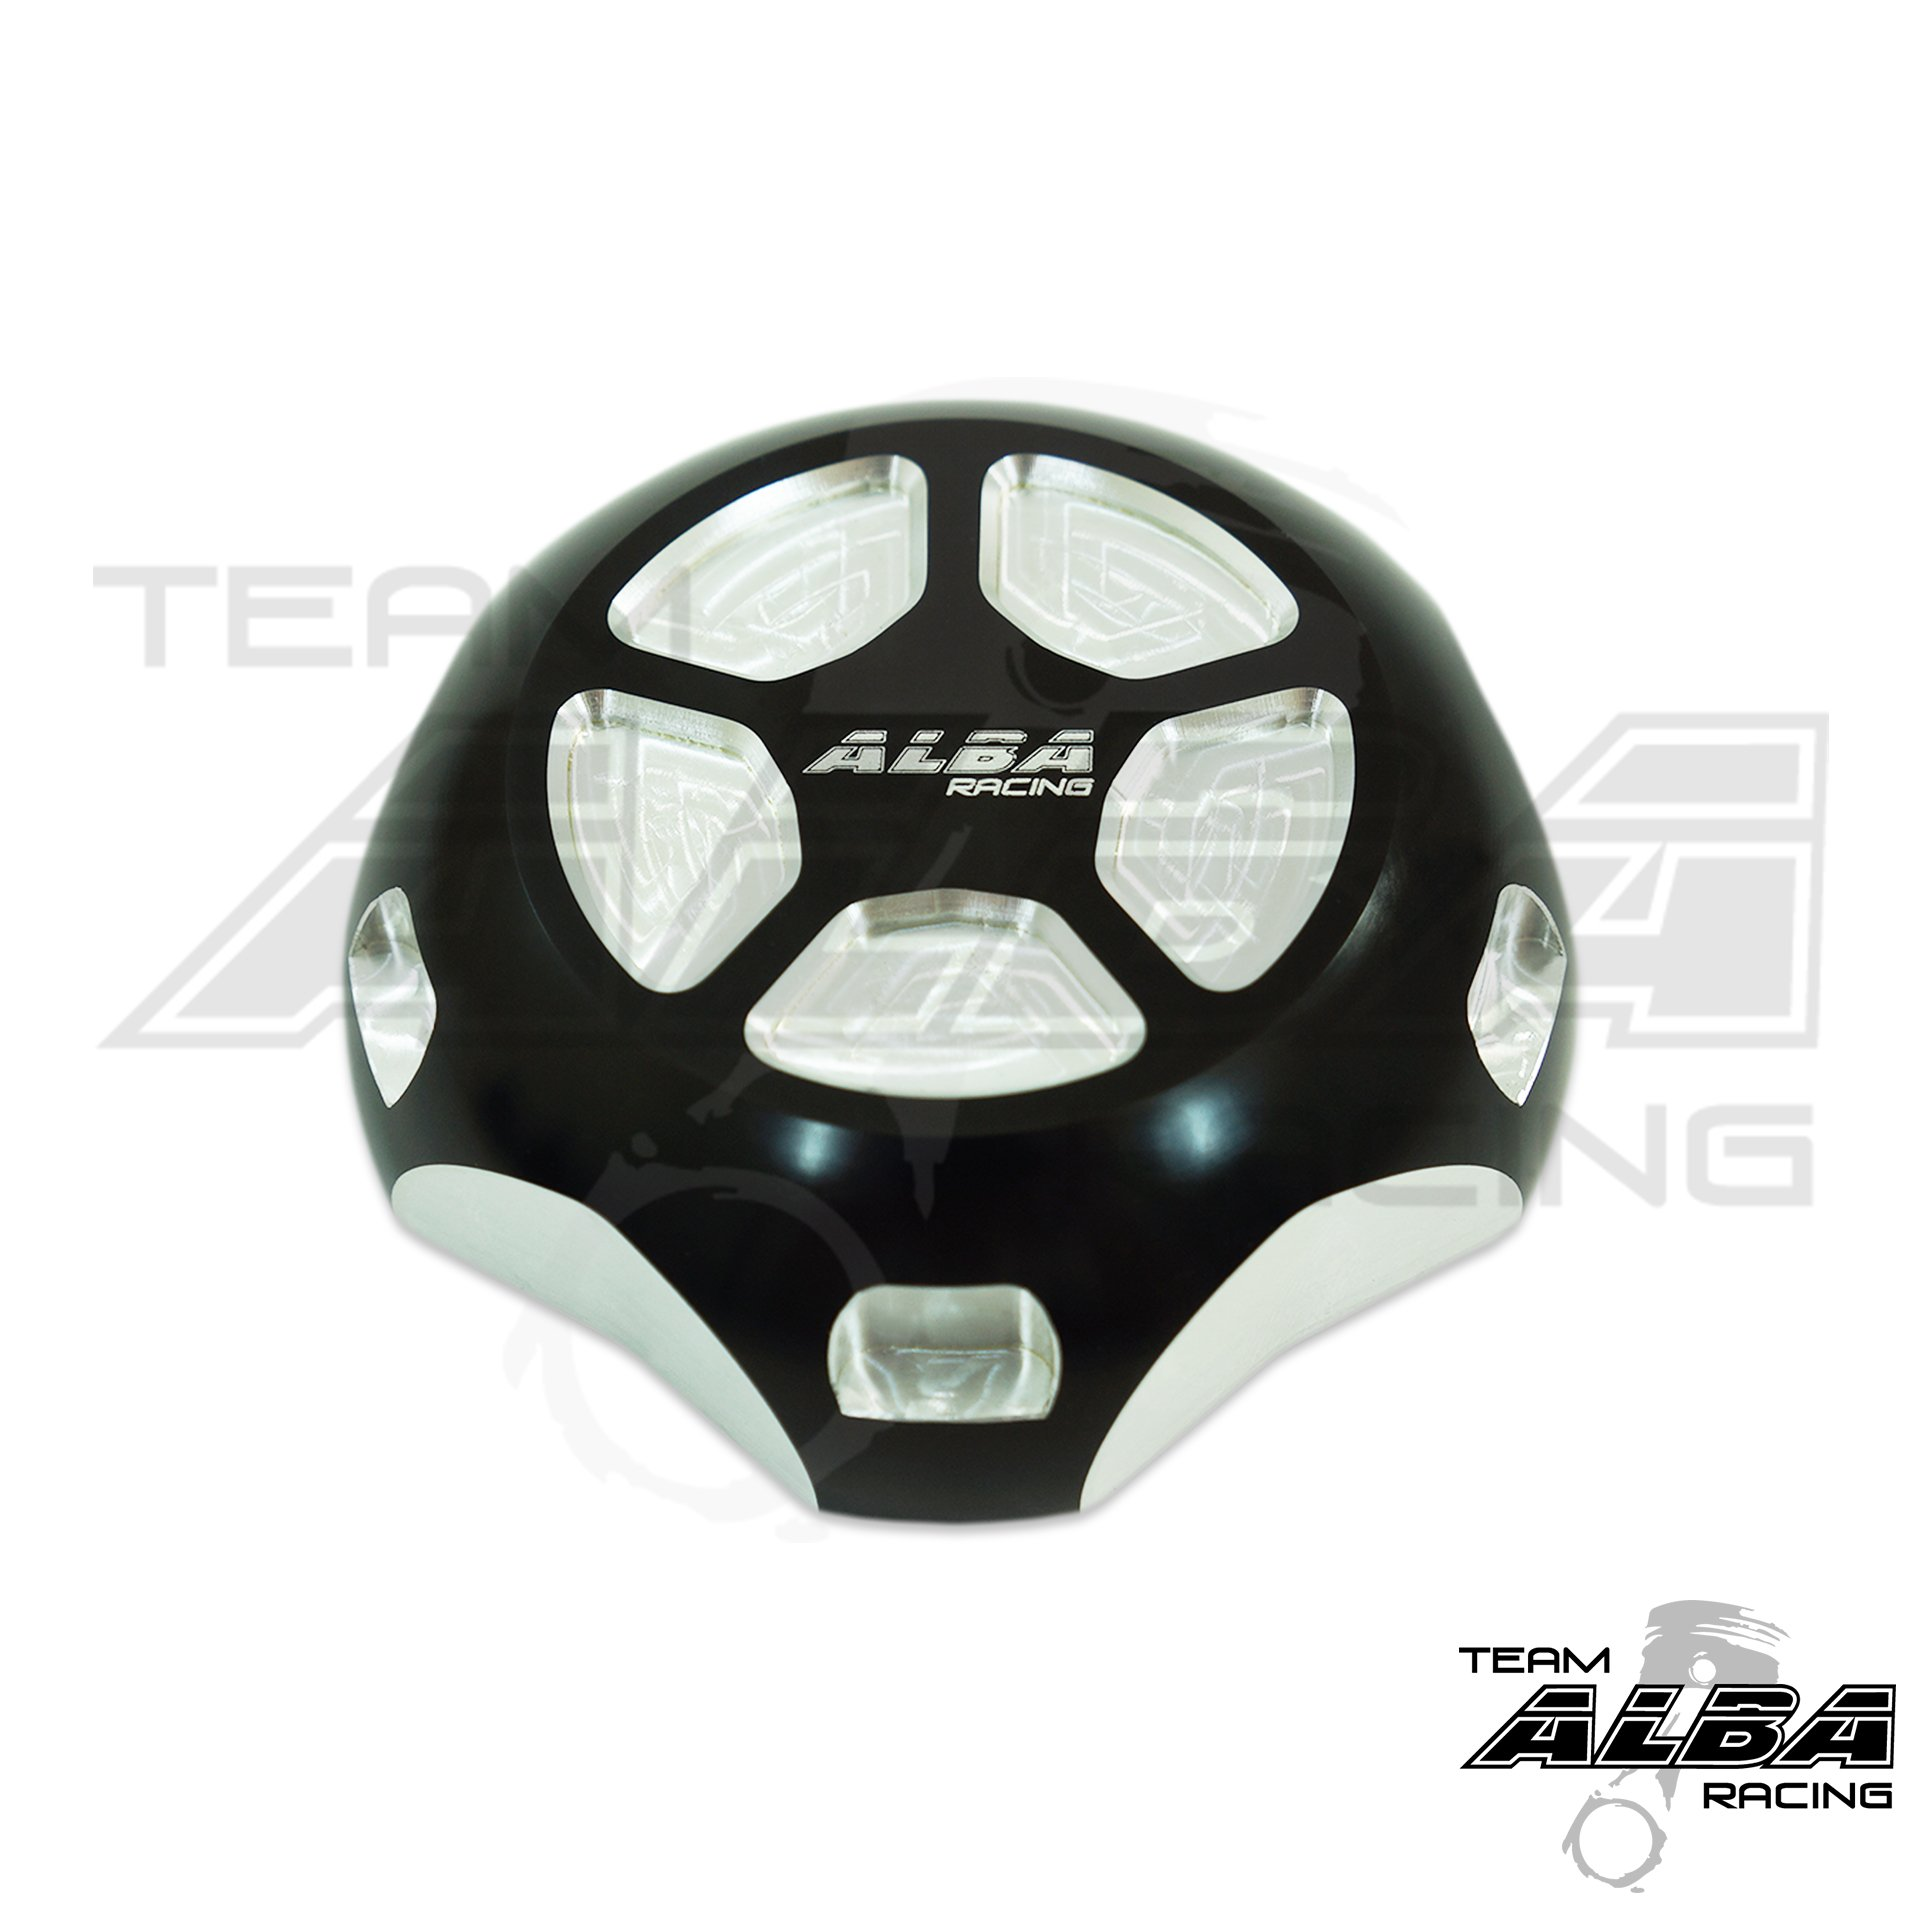 Polaris RZR XP1000 EPS (2014-2017) Gas Cap Billet Machined Black / Silver (Available in Many Colors)